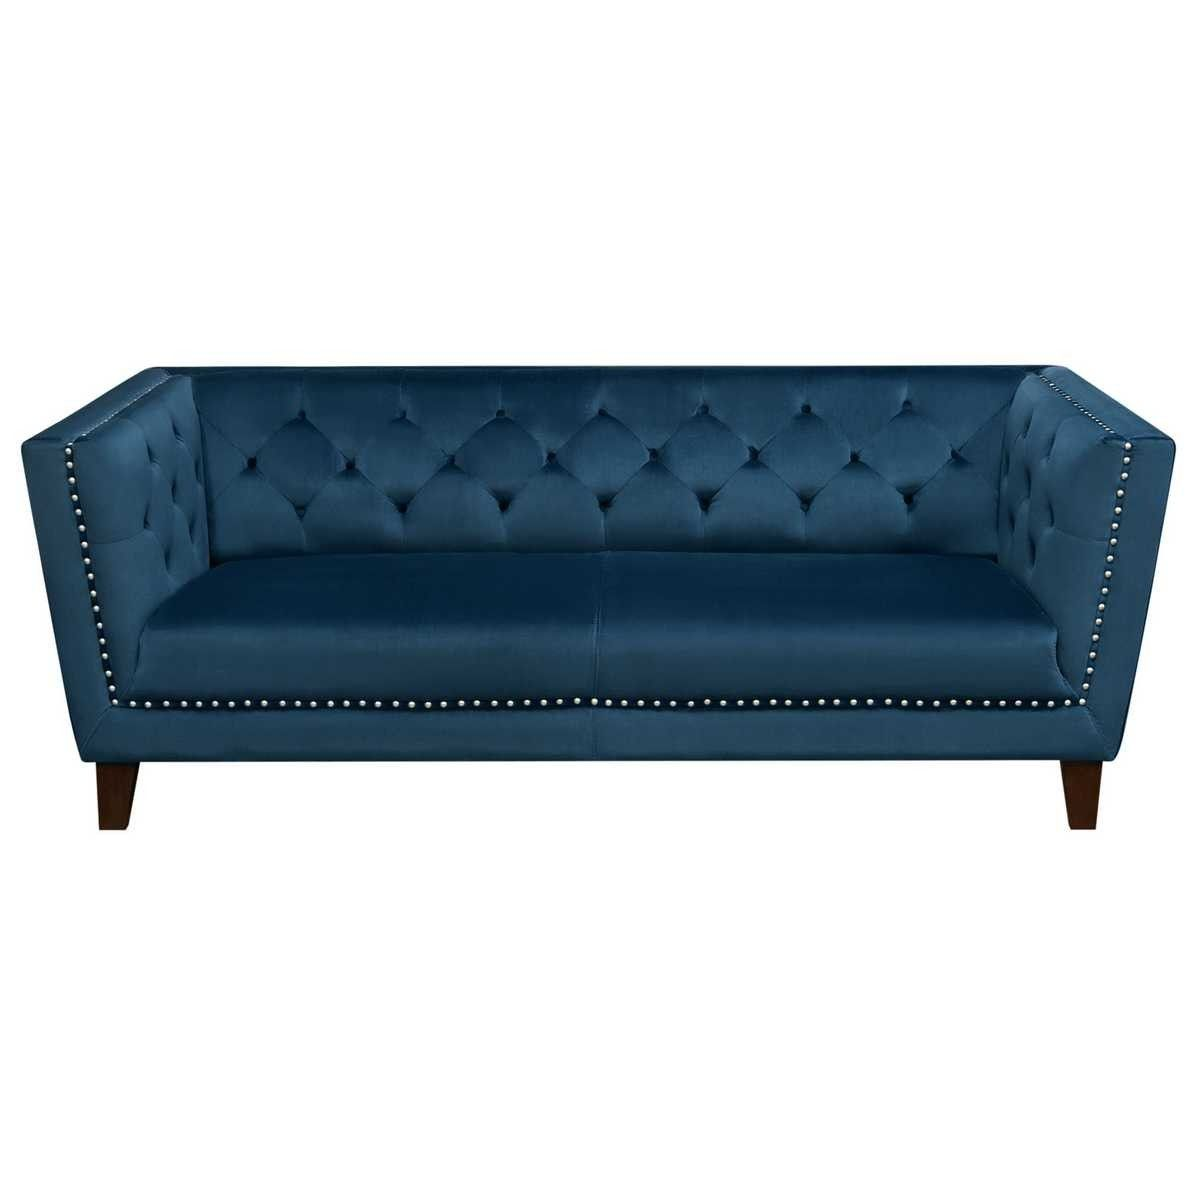 Grand Tufted Back Sofa With Nailhead Accent In Blue Velvet All Styles On Home Goods Sofa Upholstery Sofa Chesterfield Sofa